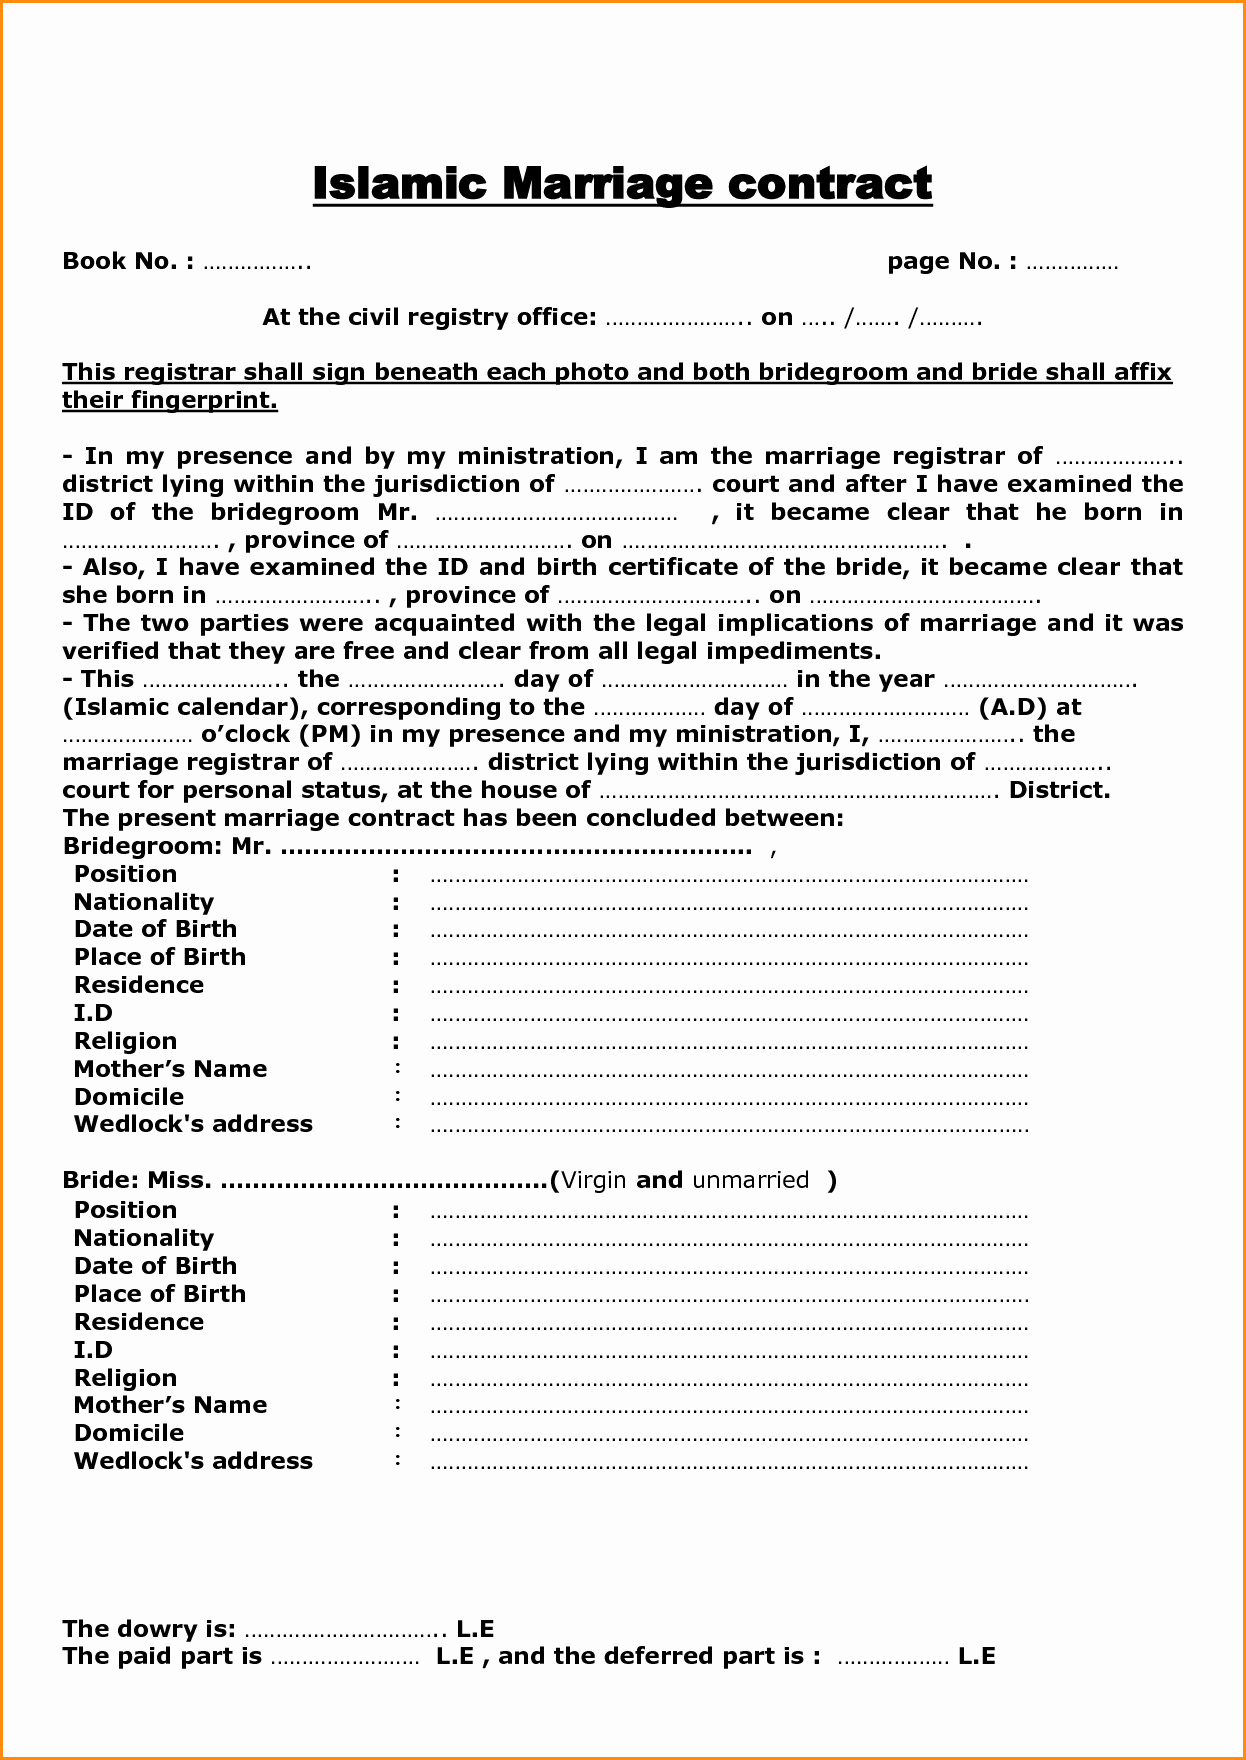 Islamic Marriage Contract Template Lovely Marriage Contract Sample